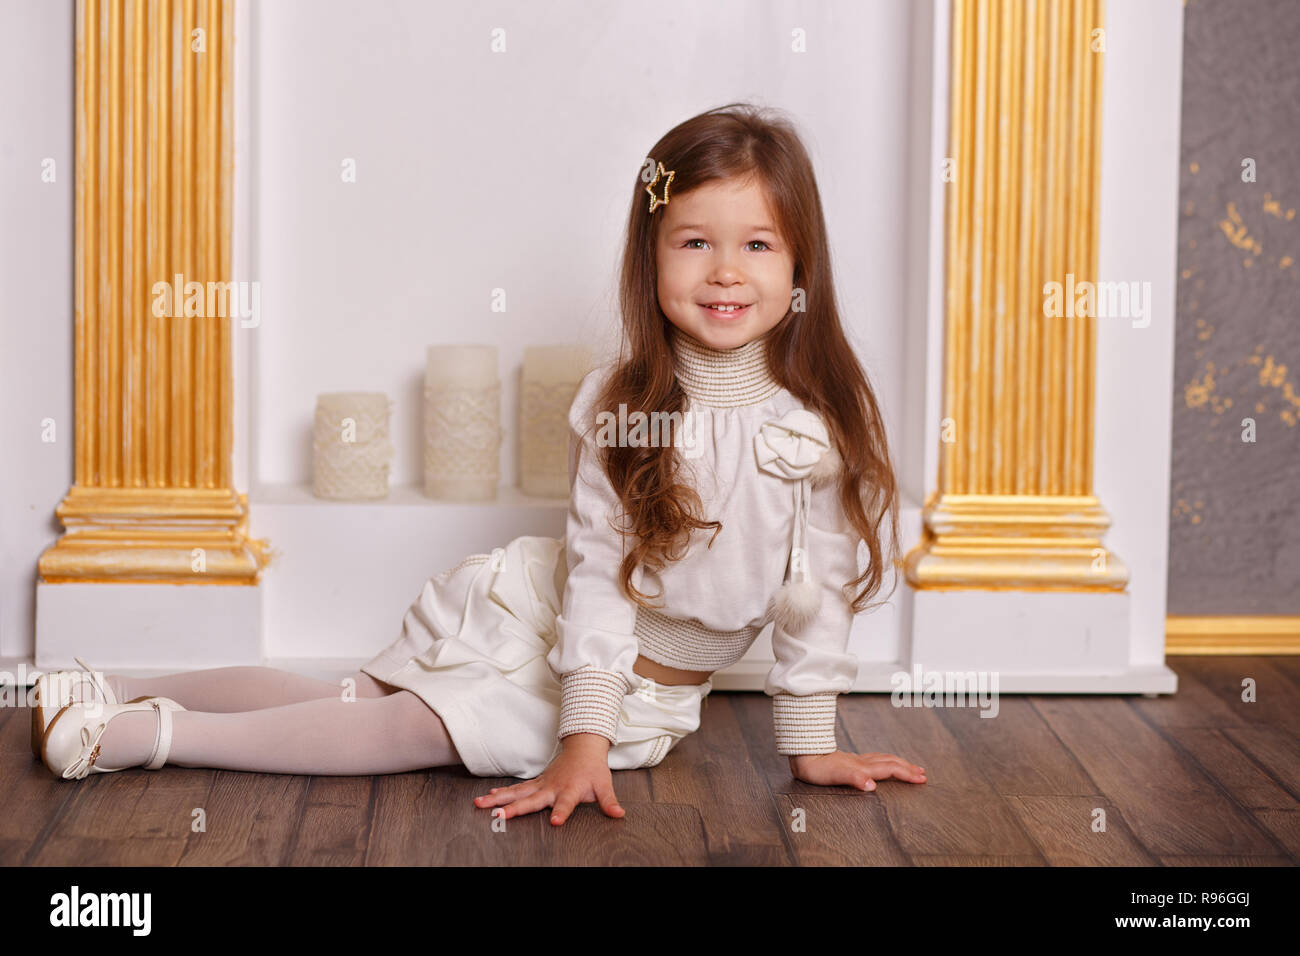 5779e74ac113 Young brunette dolly lady girl stylish dressed in white skirt midi ...